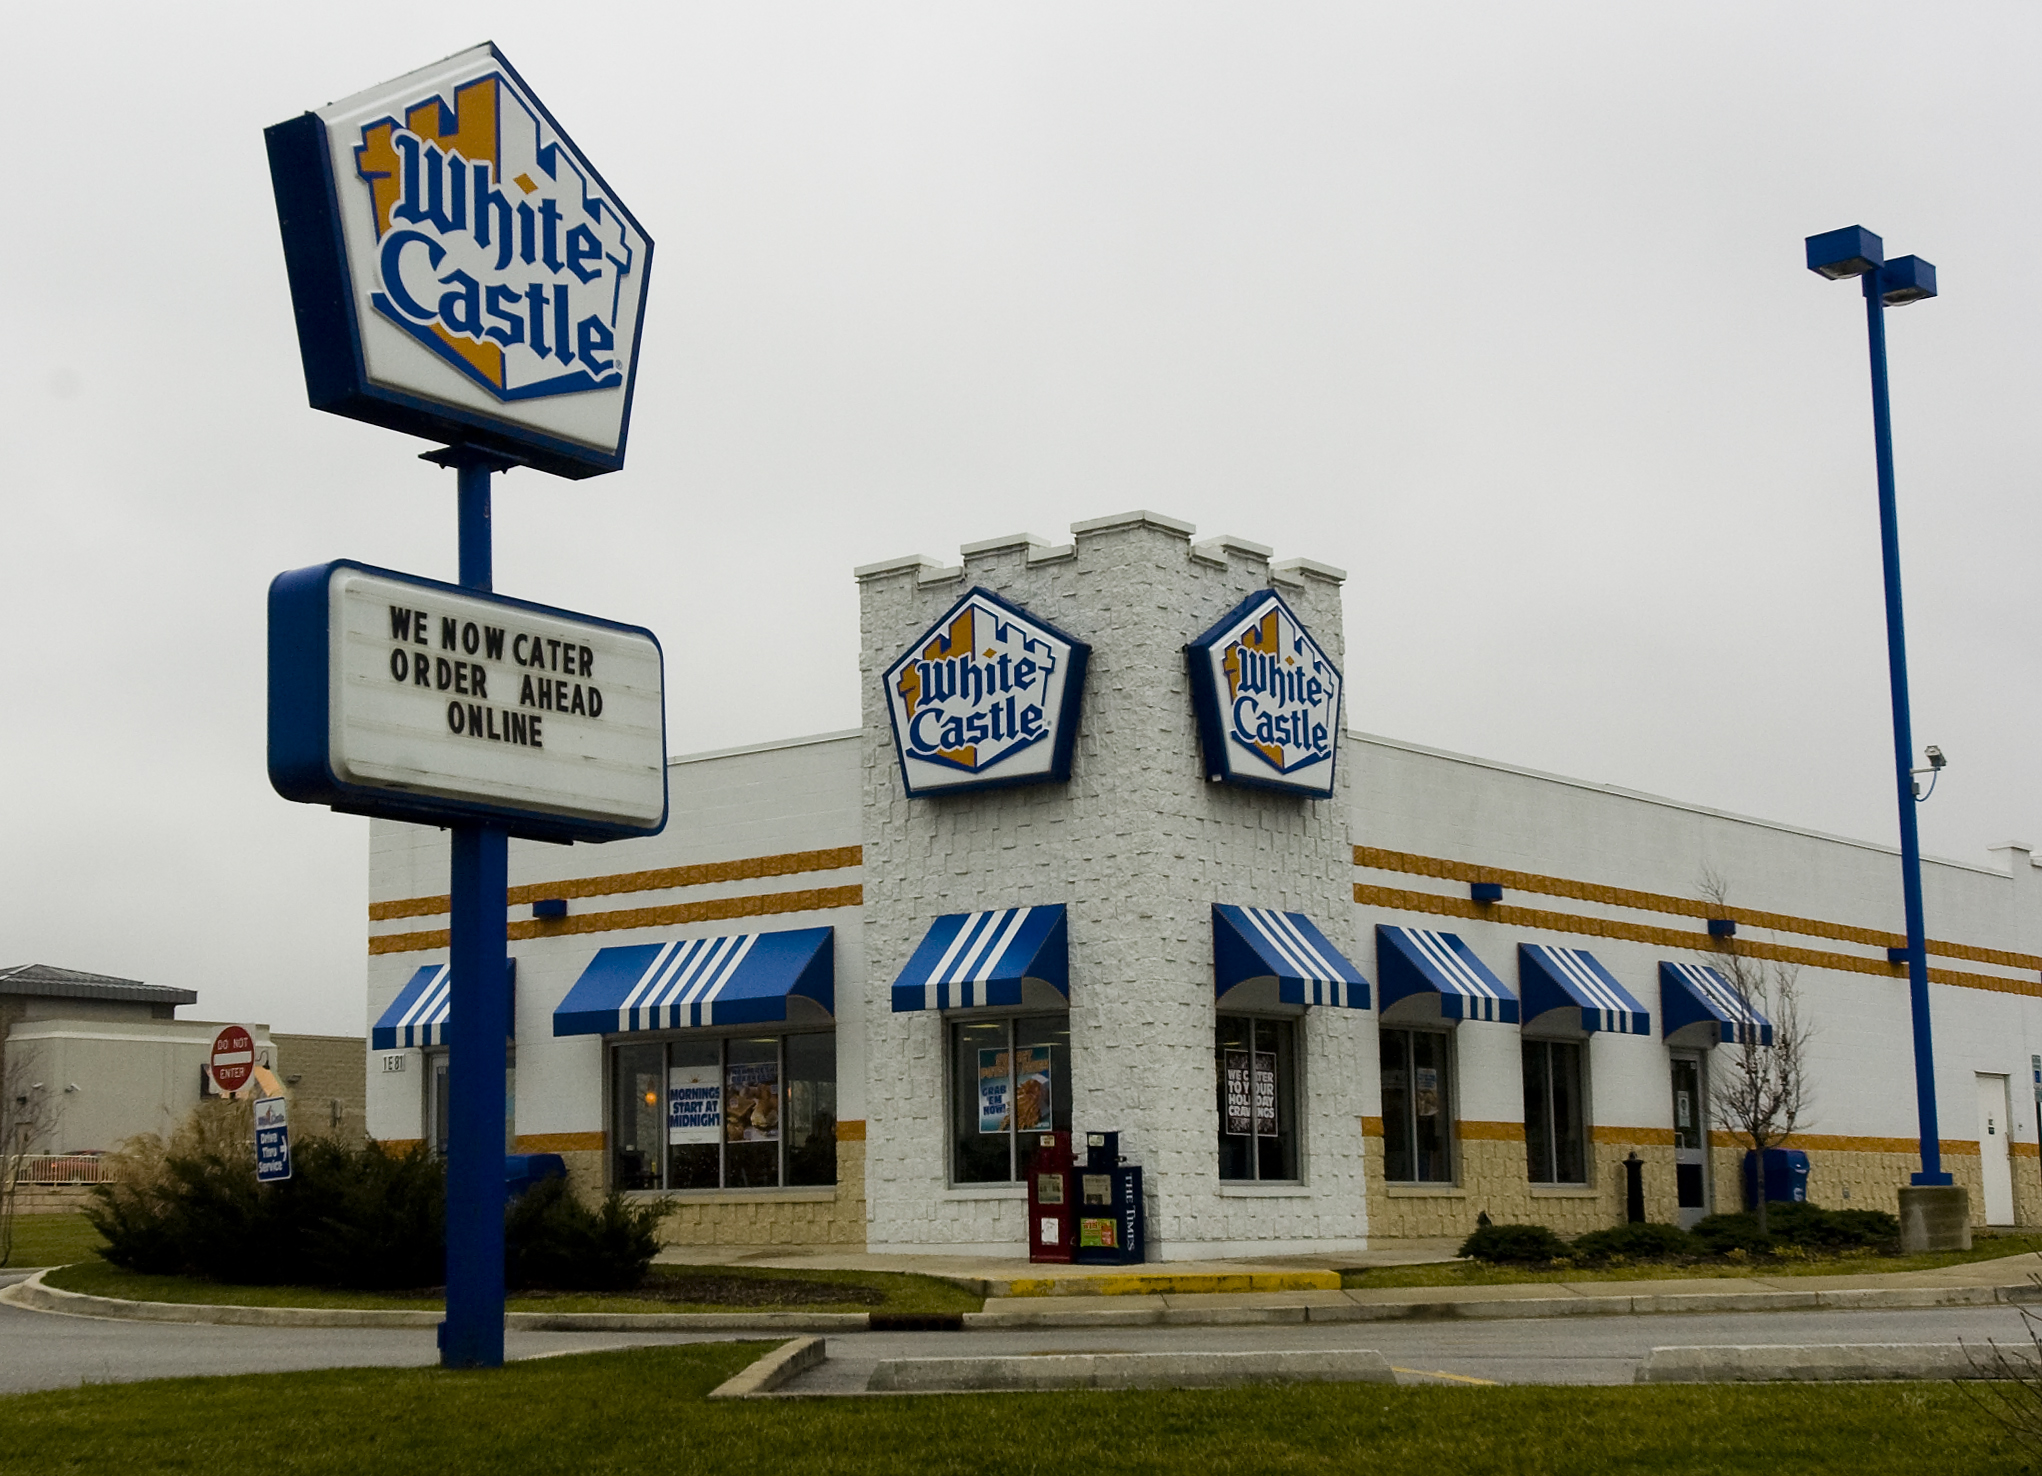 Exterior of White Castle